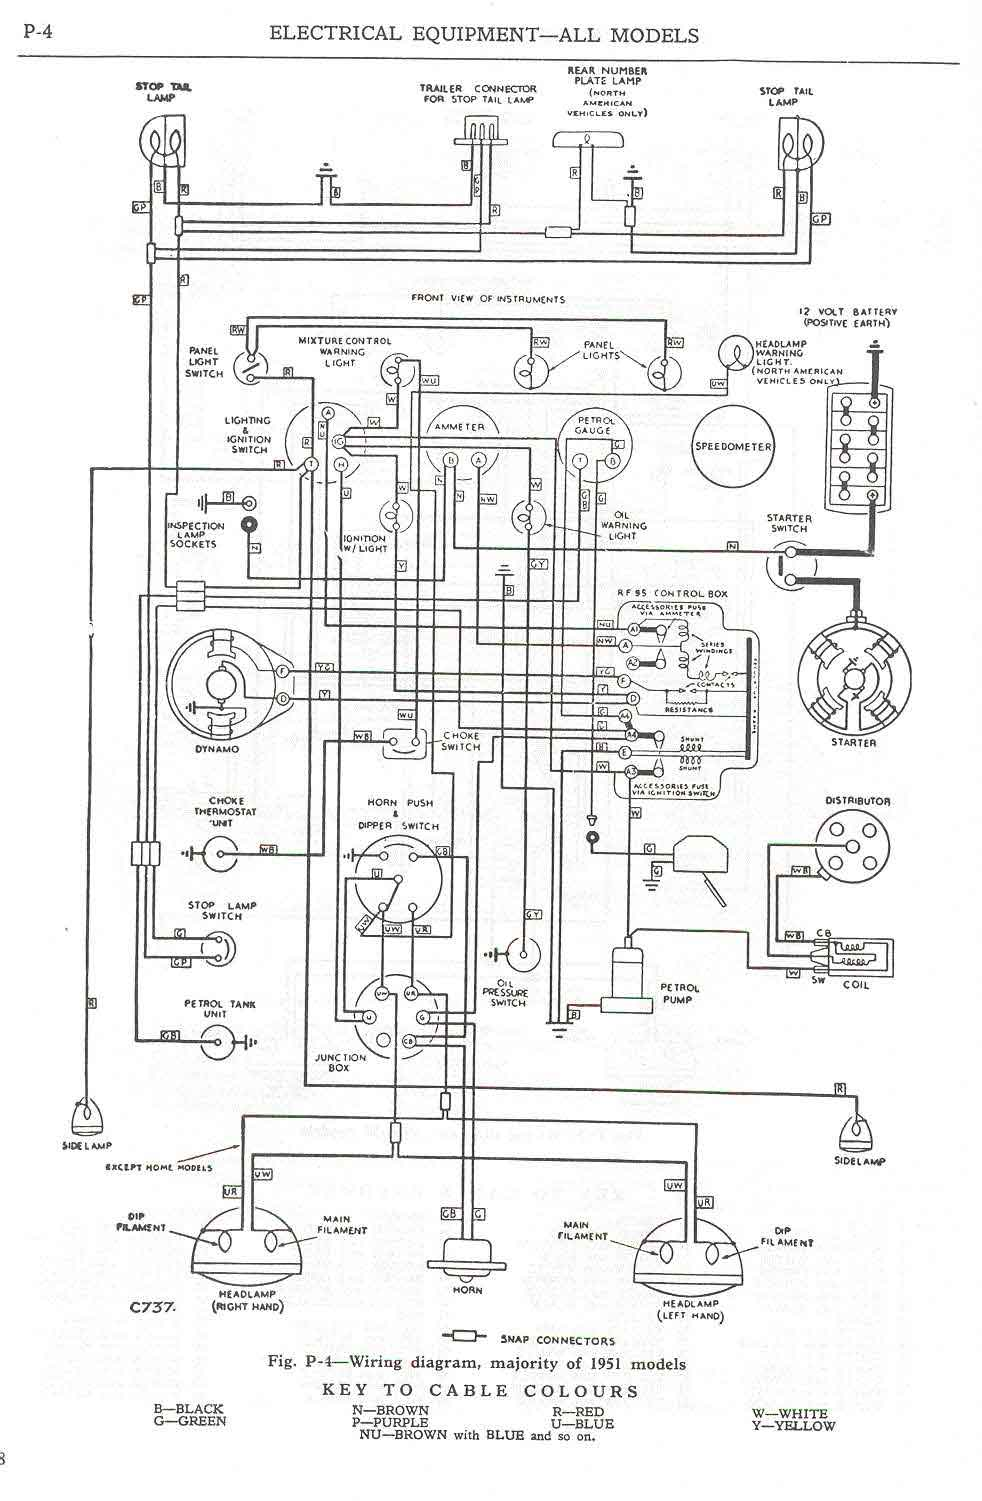 series 1 land rover discovery stereo wiring diagram land rover faq - repair & maintenance - series ...